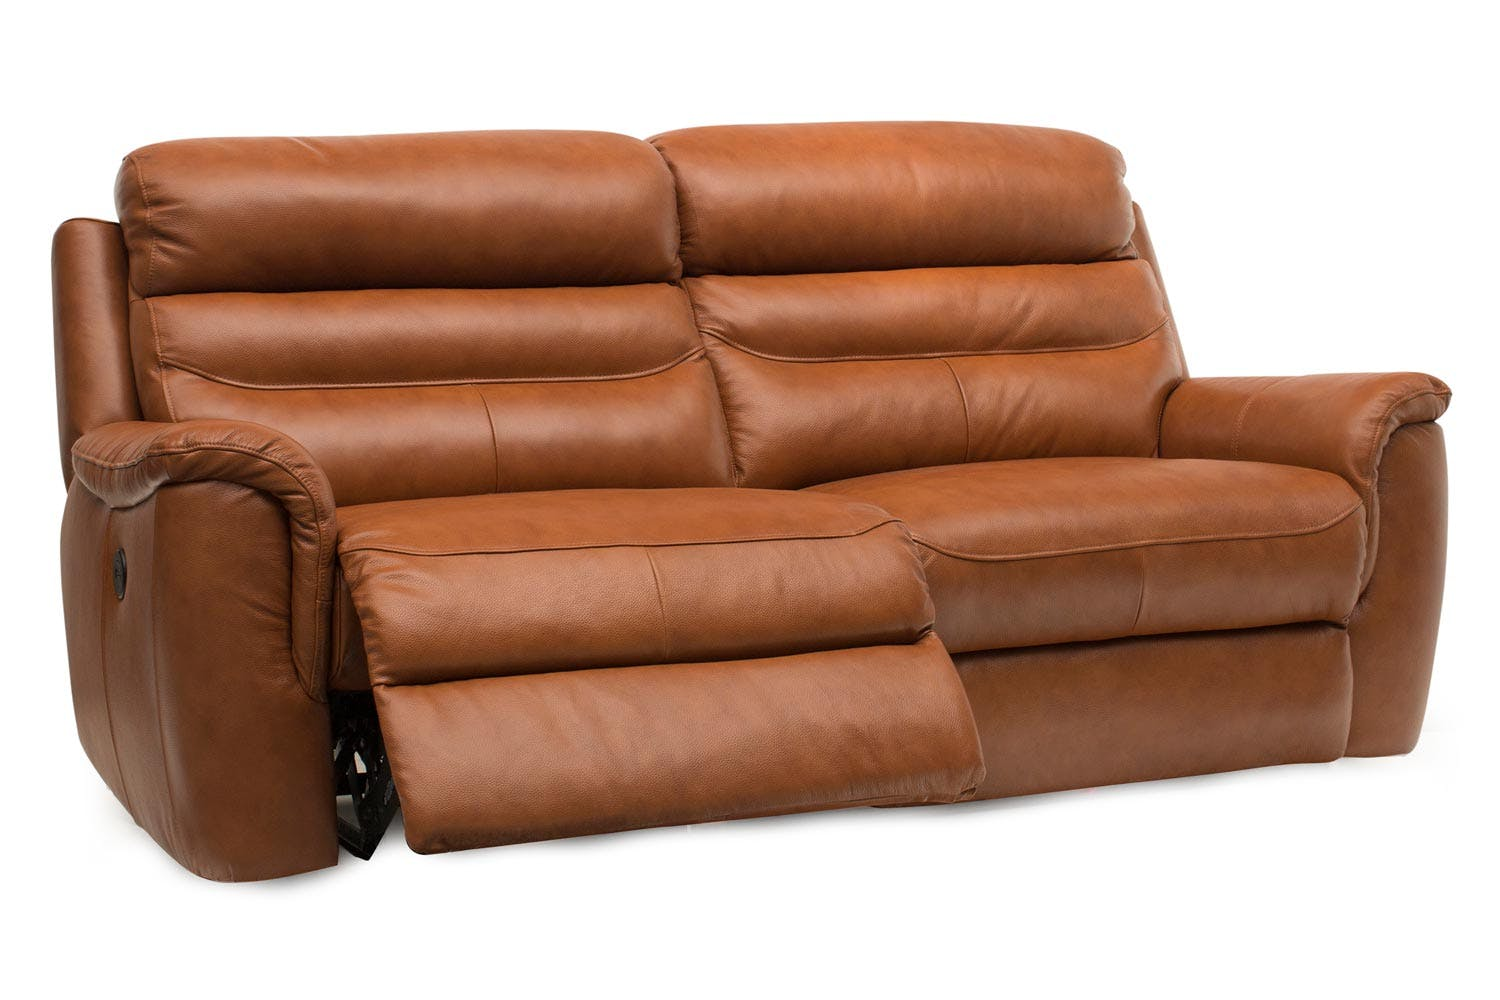 Bayle Electric Recliner | 3 Seater | Ireland